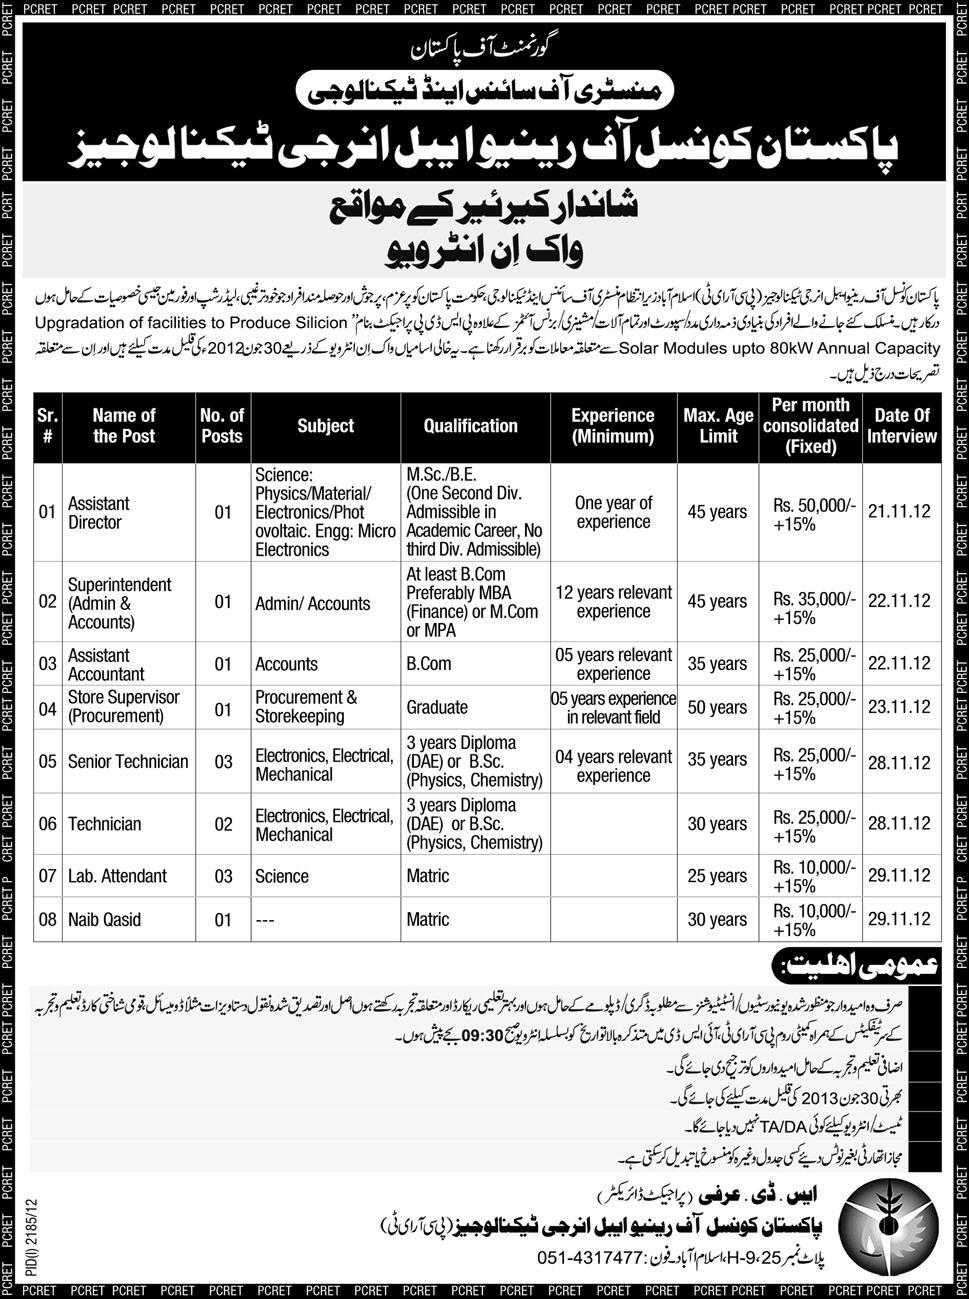 PCRET Jobs Pakistan Council Renewable Energy Jobs Energy Crisis in Pakistan